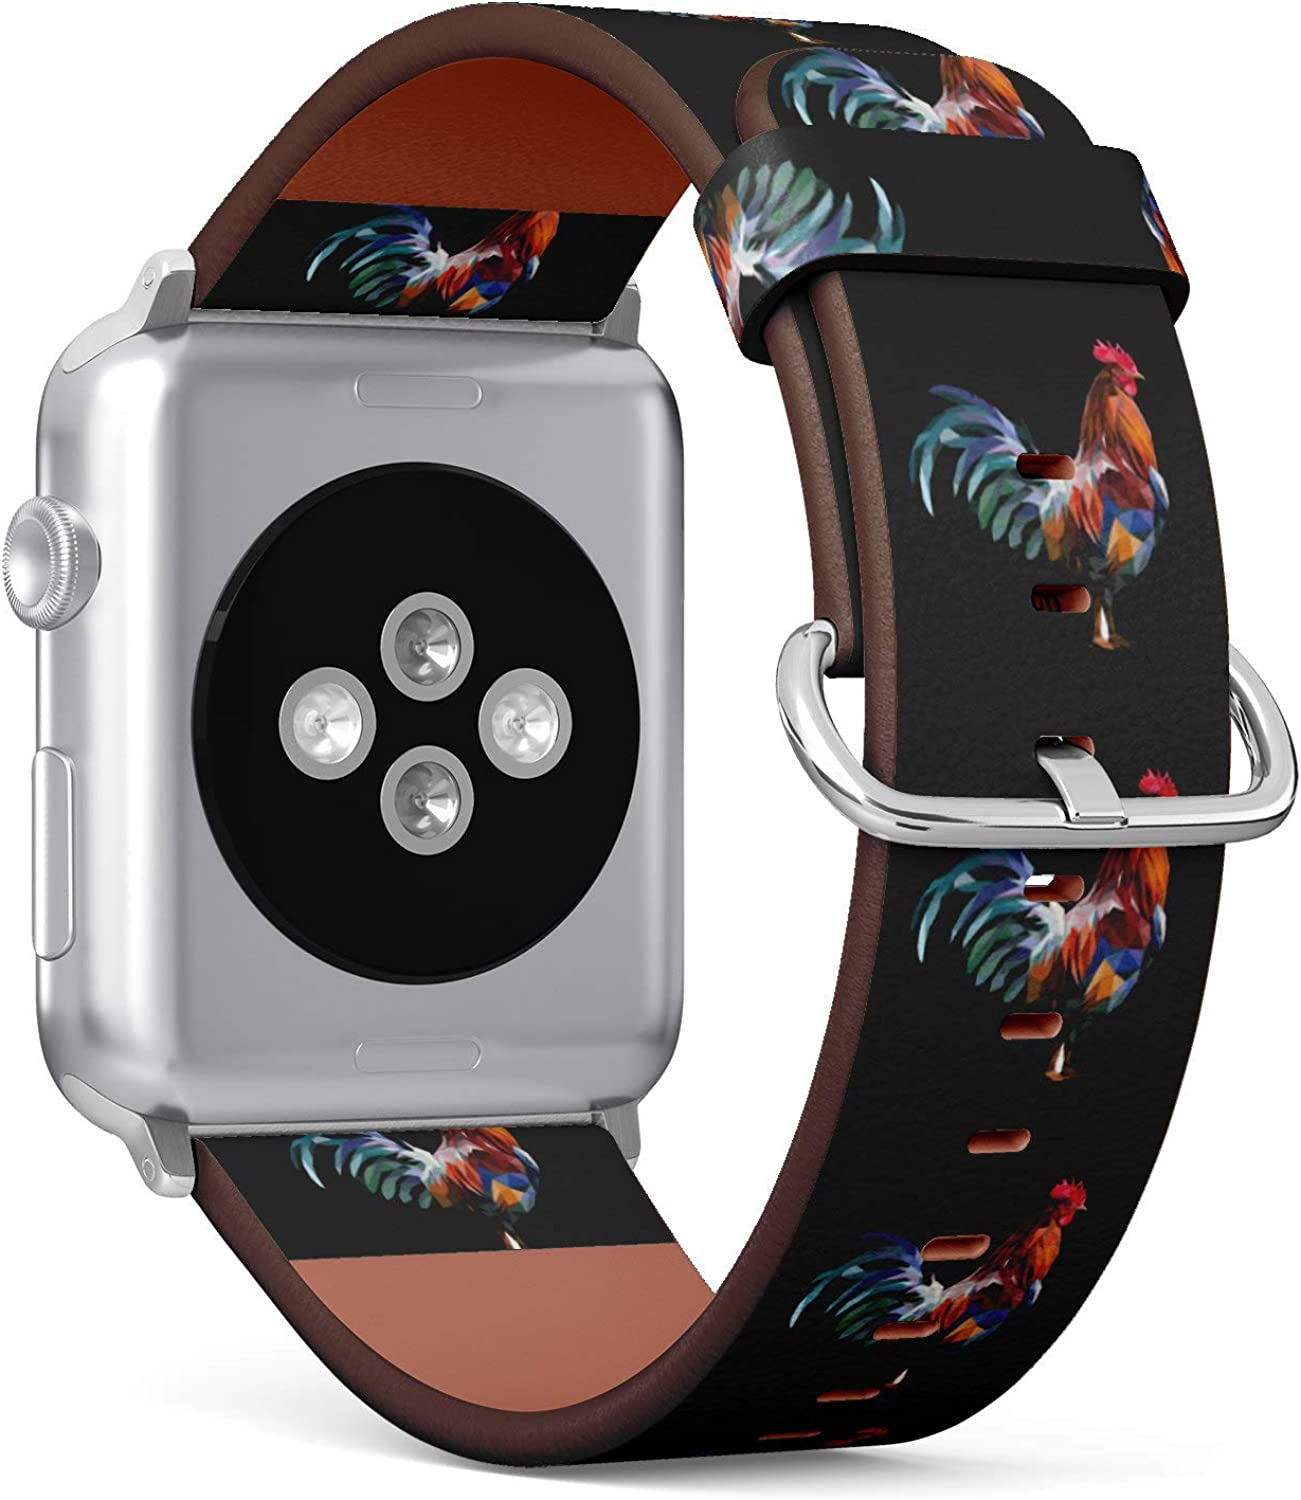 (Geometry Goat Rooster) Patterned Leather Wristband Strap for Apple Watch Series 4/3/2/1 gen,Replacement for iWatch 42mm / 44mm Bands